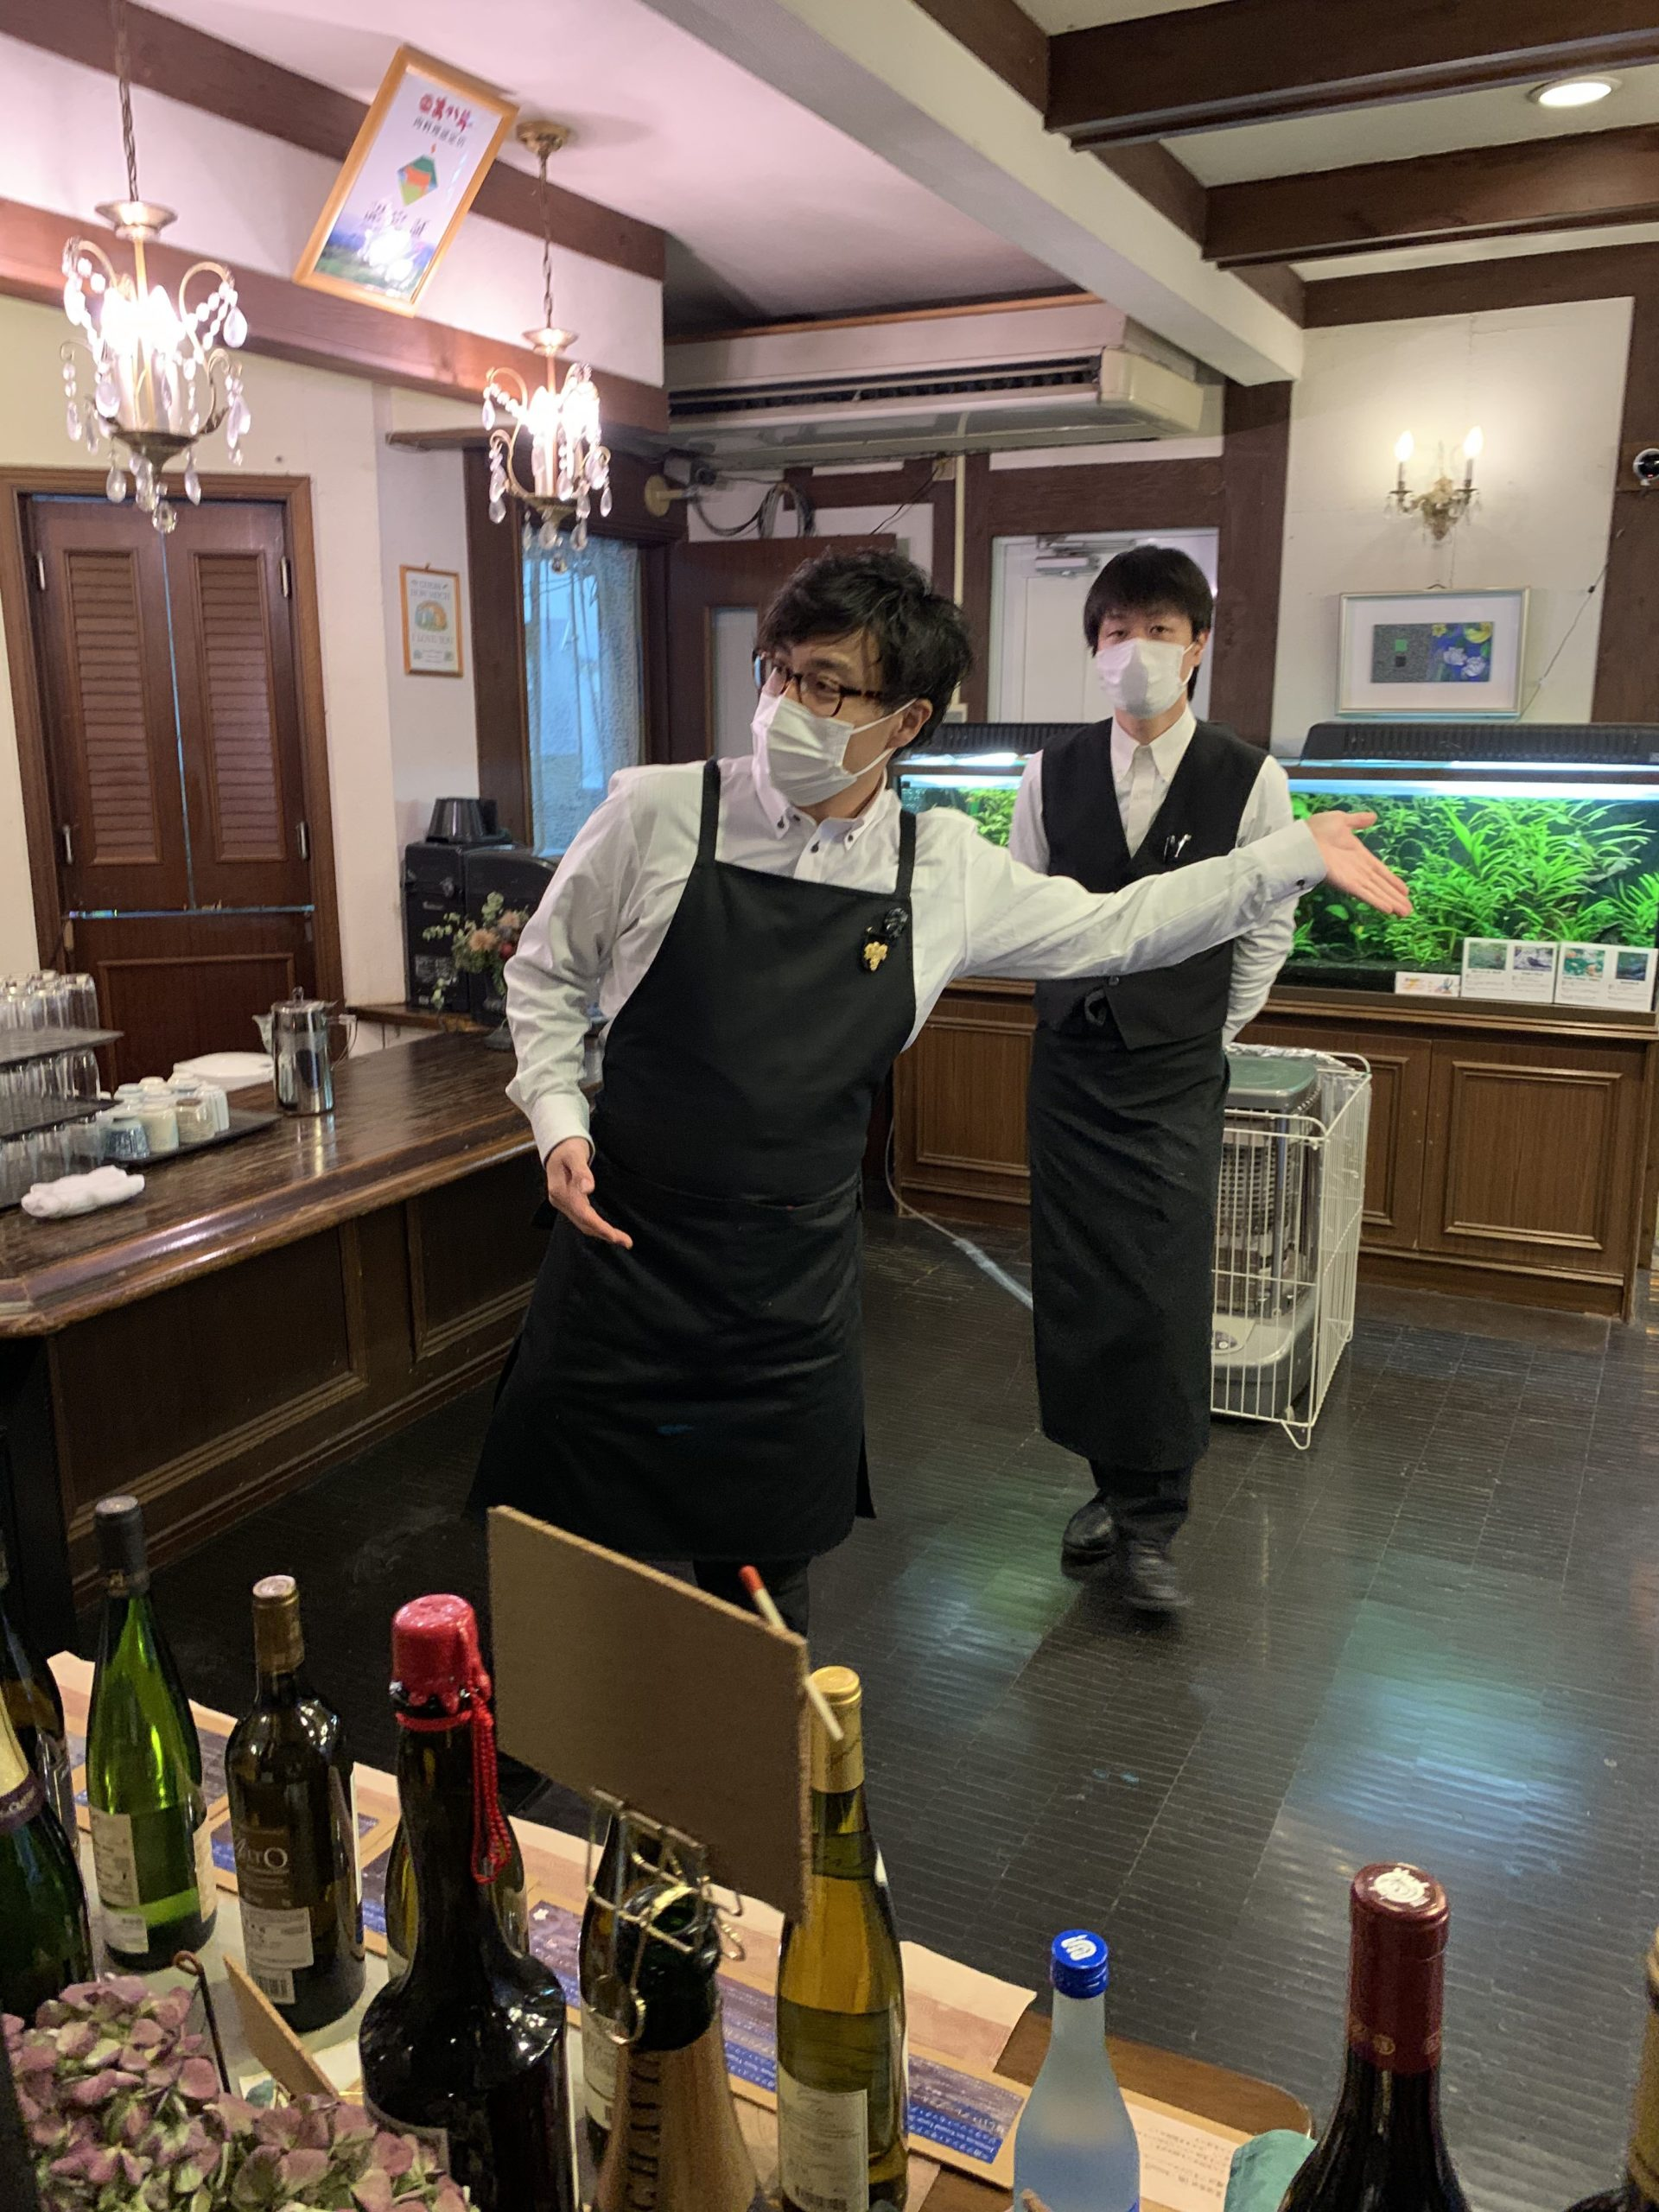 Staff welcoming guests at the restaurant (2020 / 2 / 17)